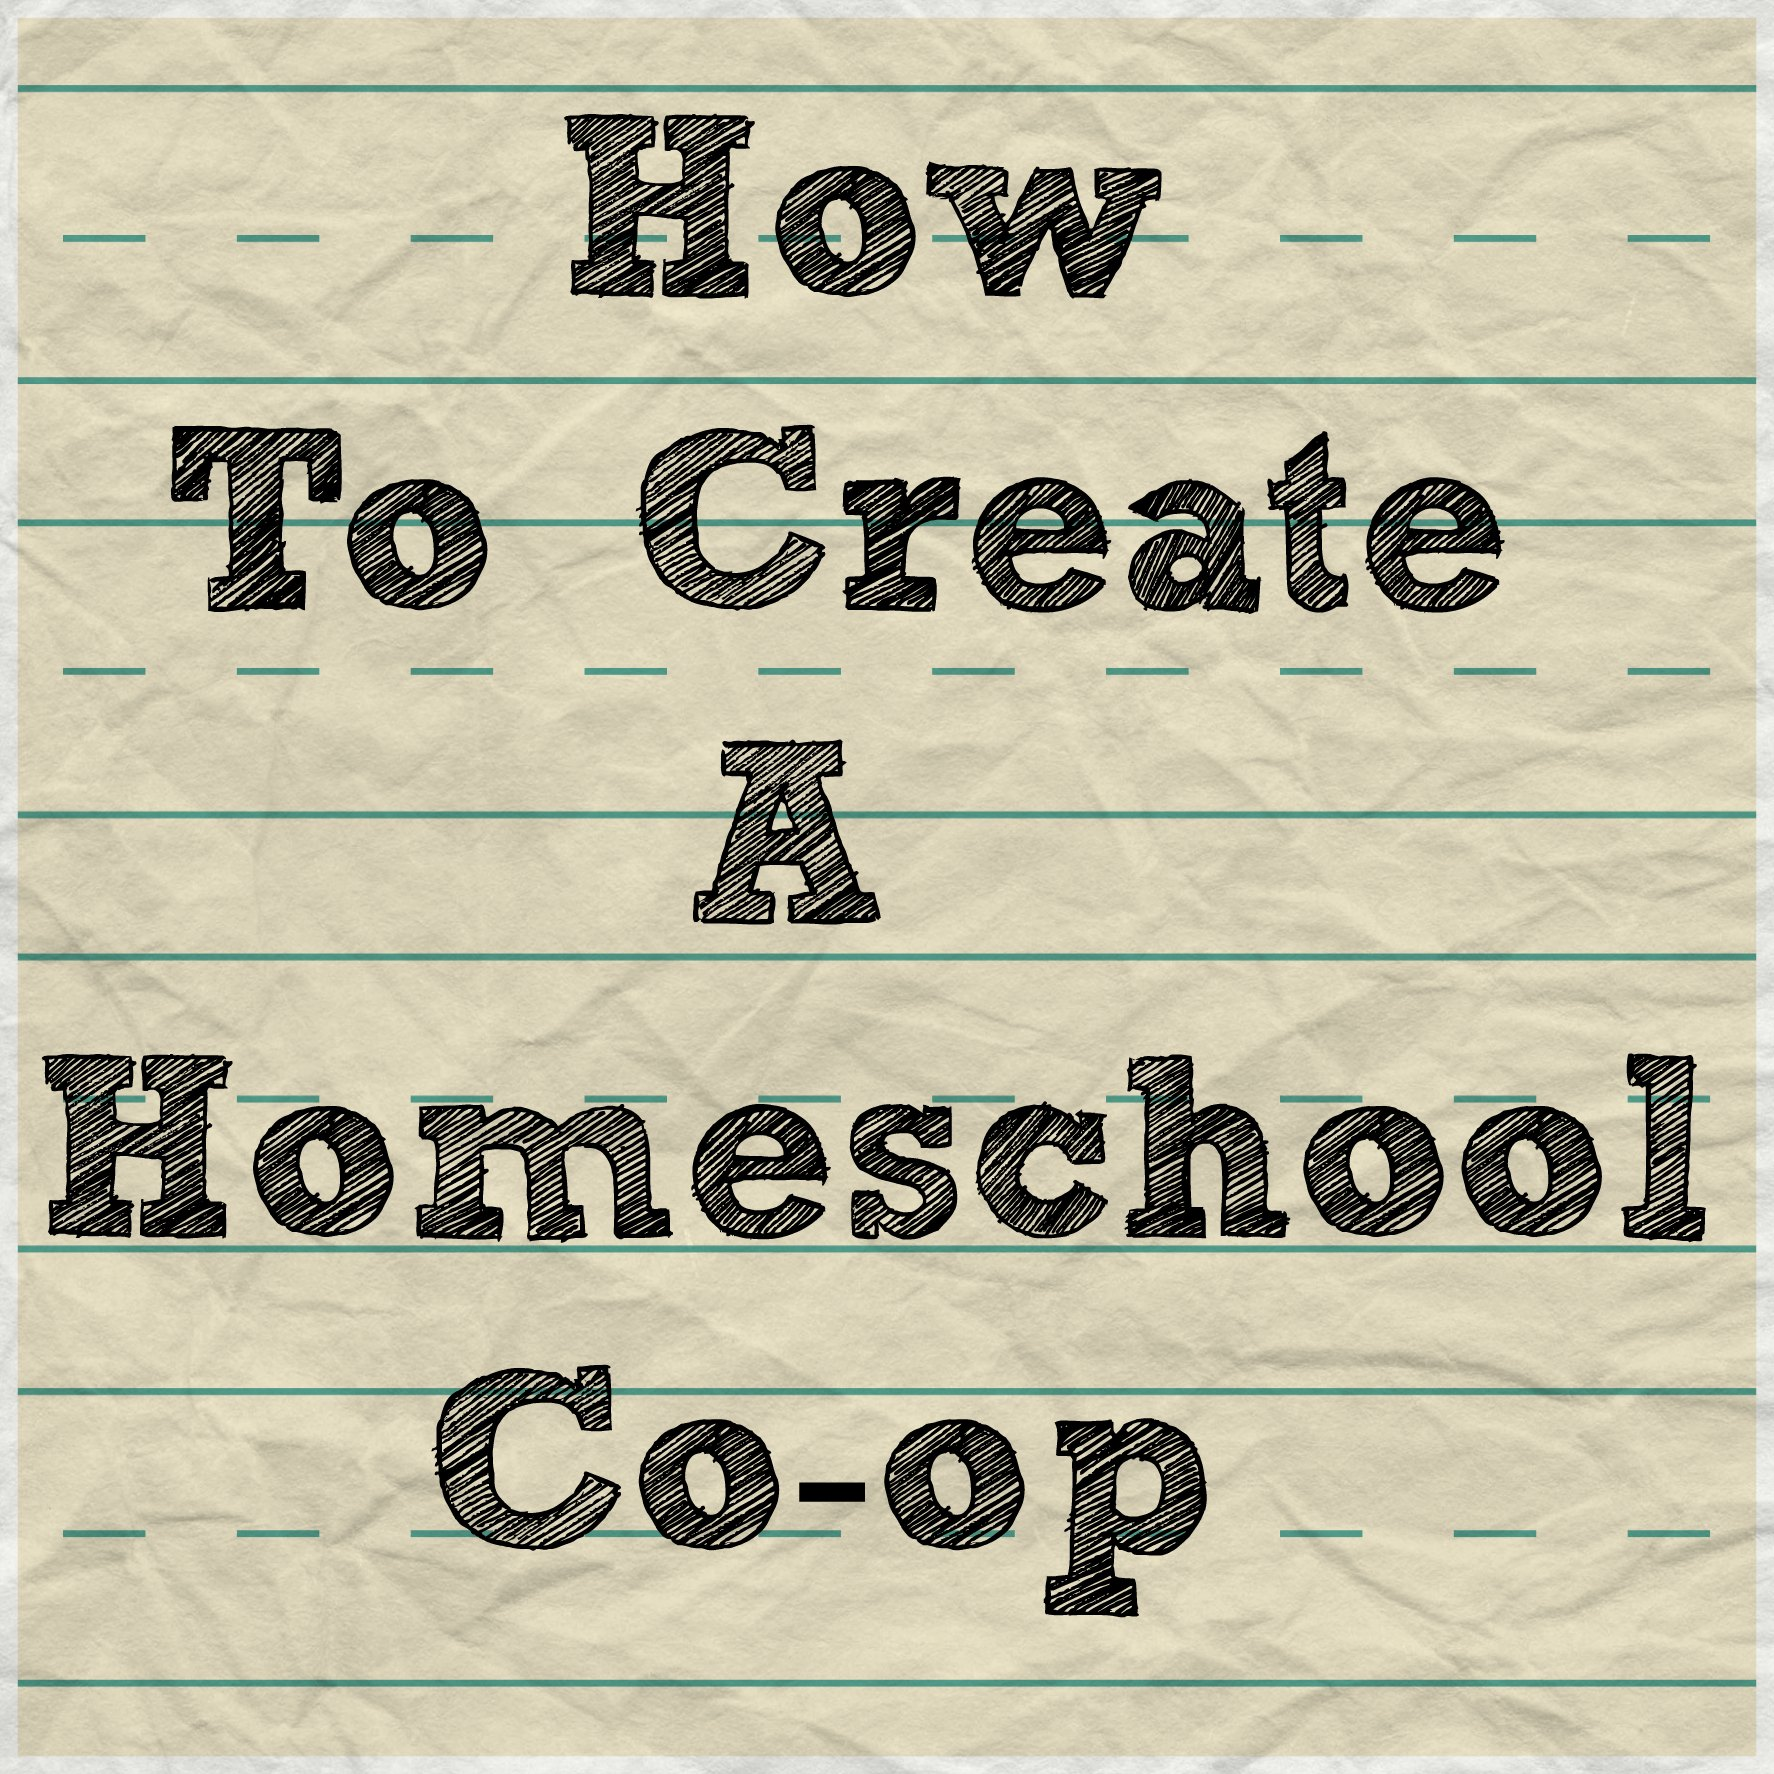 create a co-op